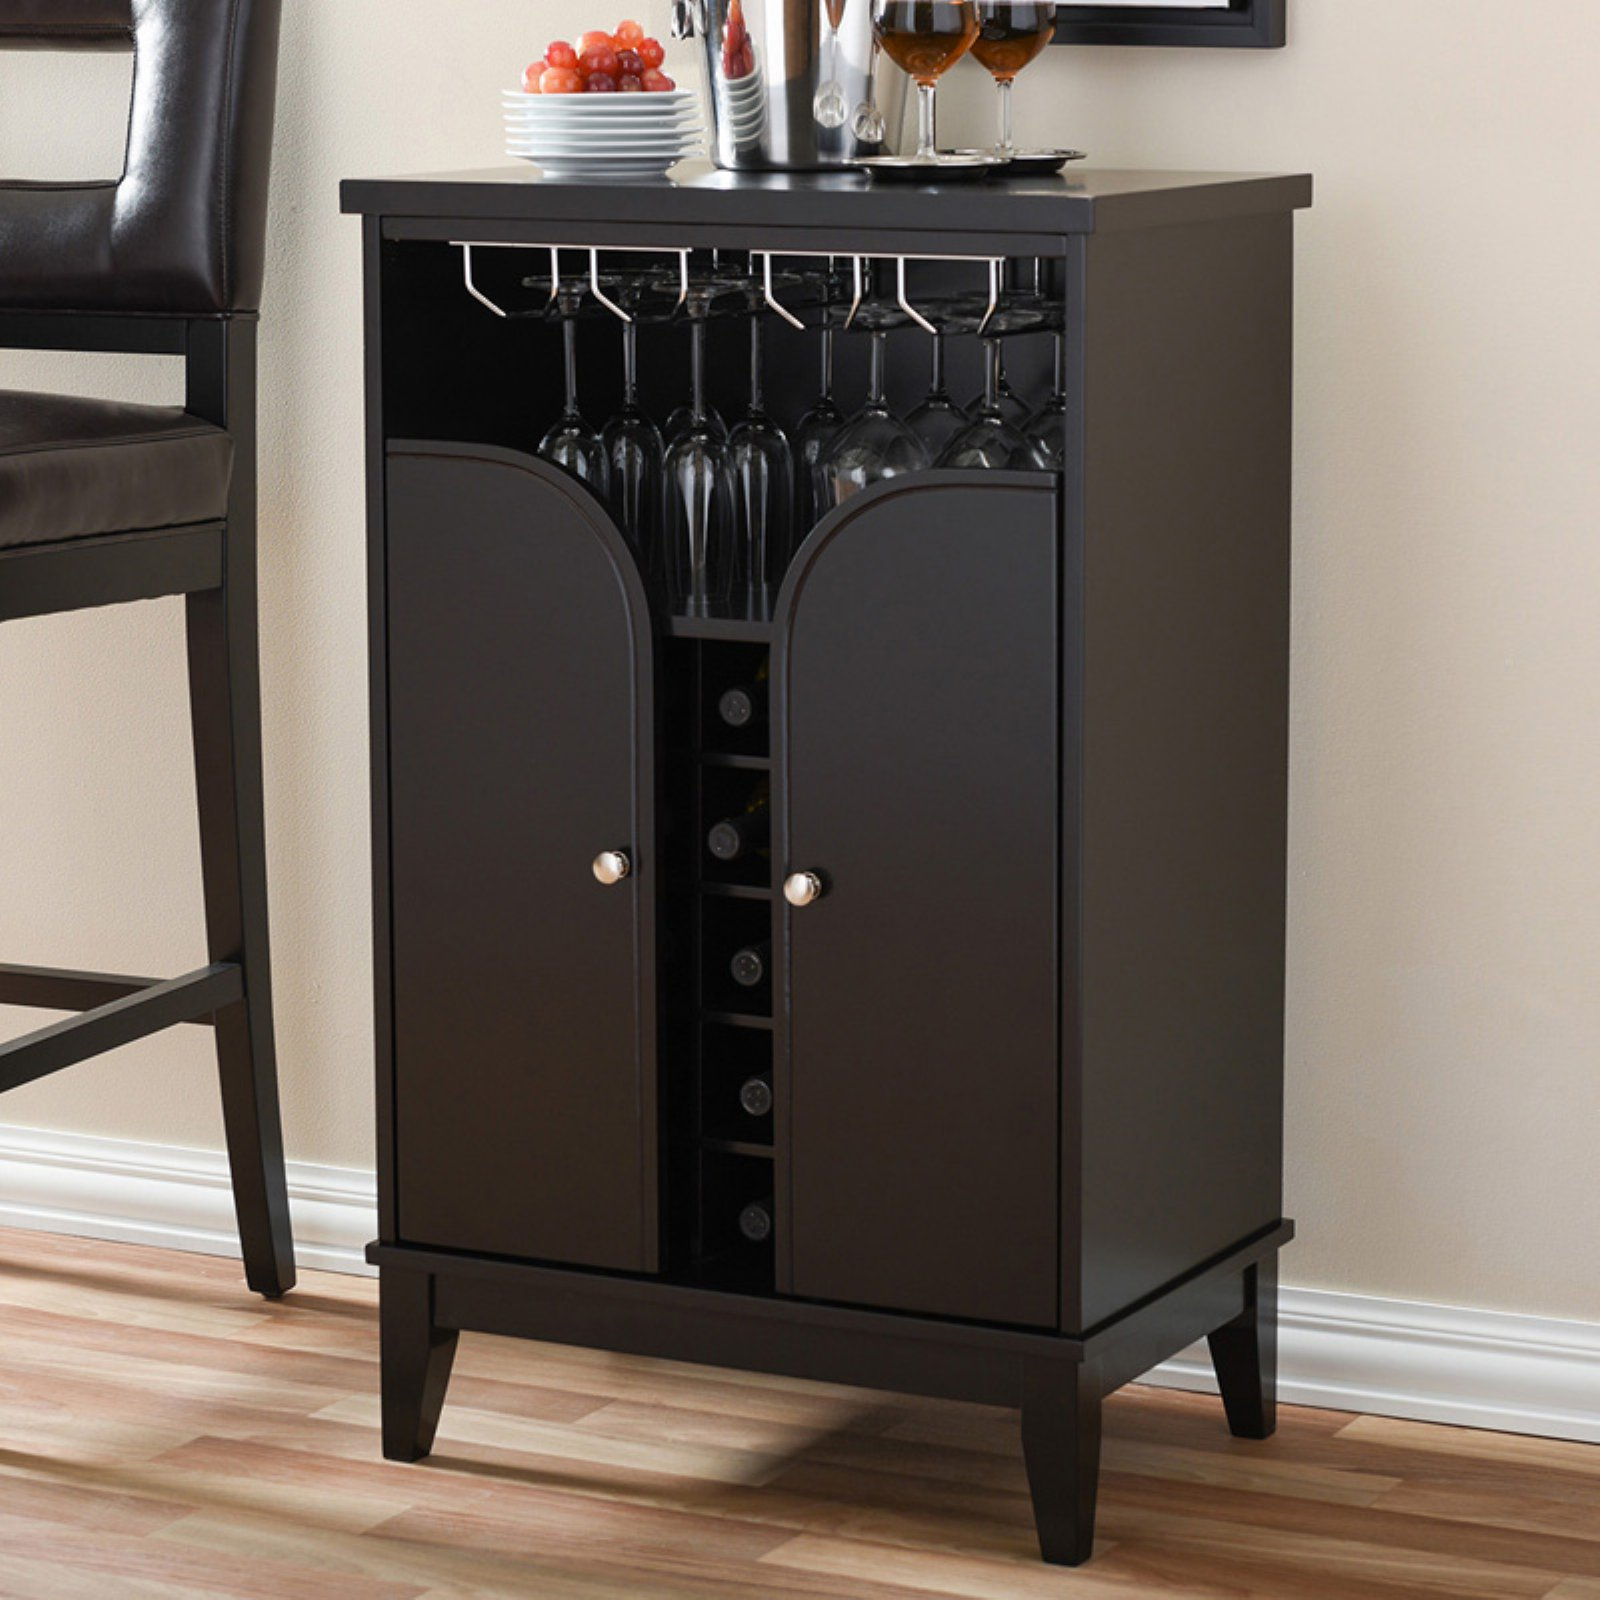 Baxton Studio Easton Modern and Contemporary Dark Brown Wood Modern Dry Bar and Wine Cabinet by Wholesale Interiors